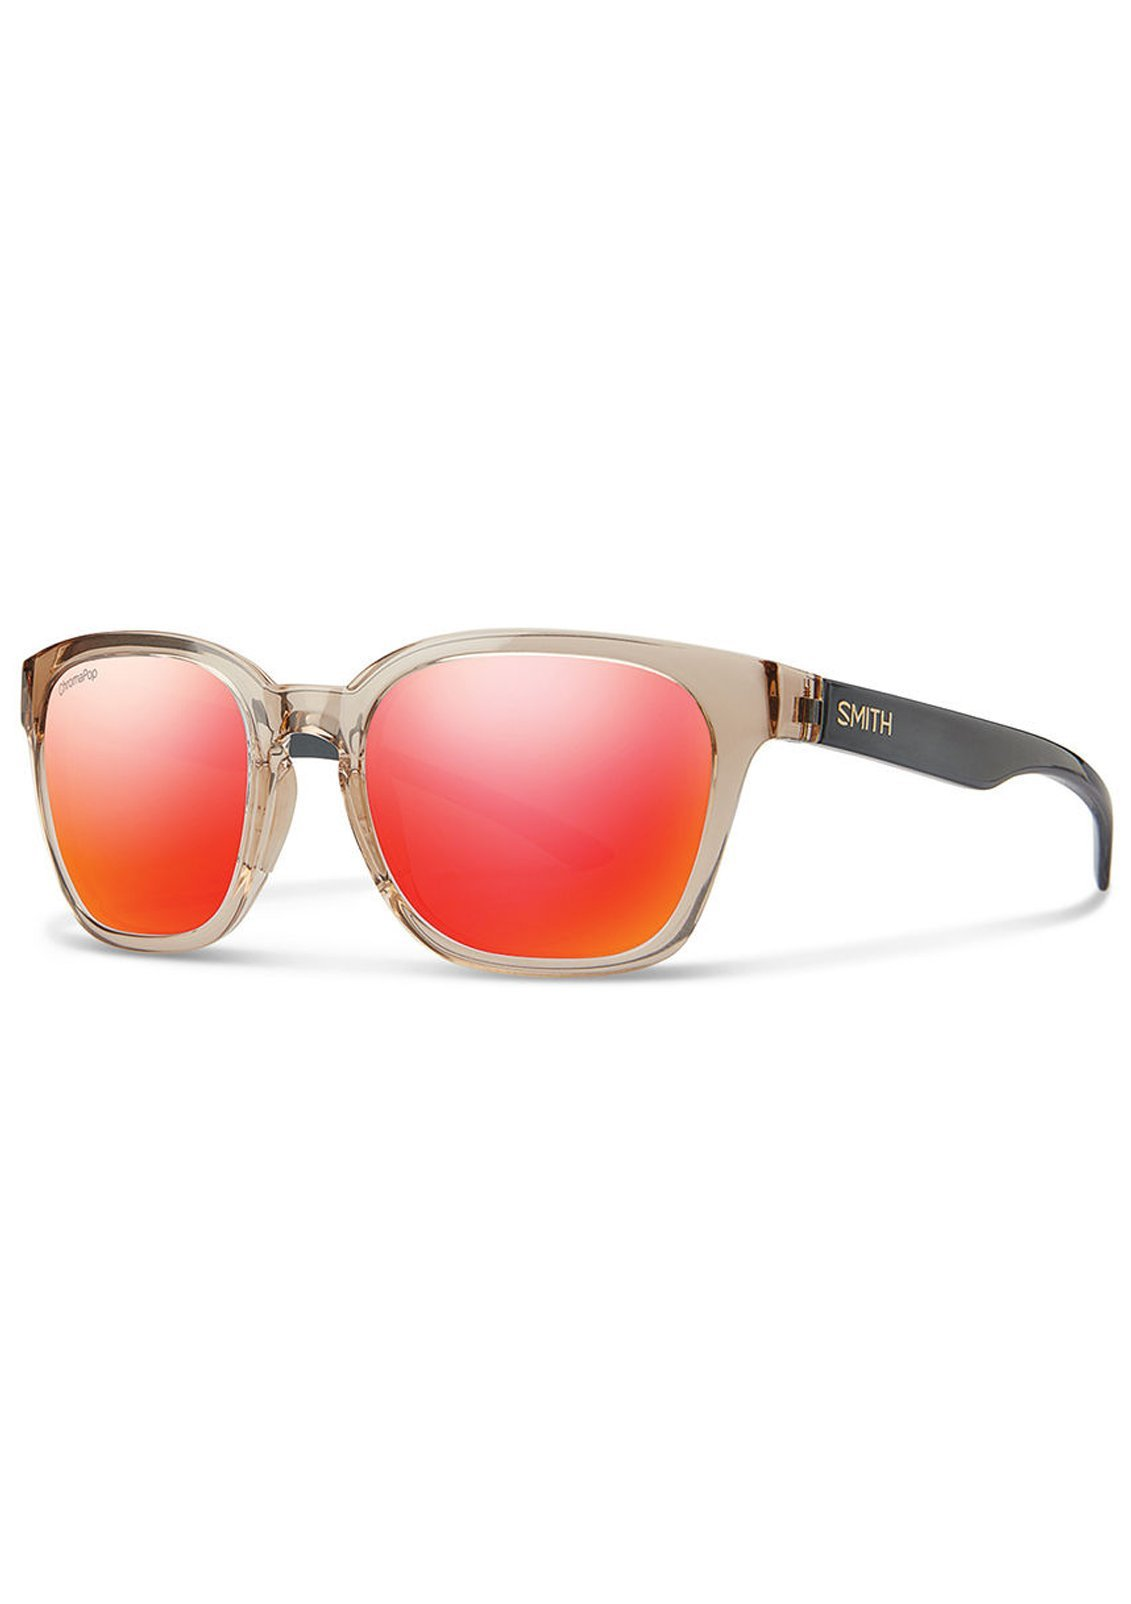 Women's Founder Sunglasses